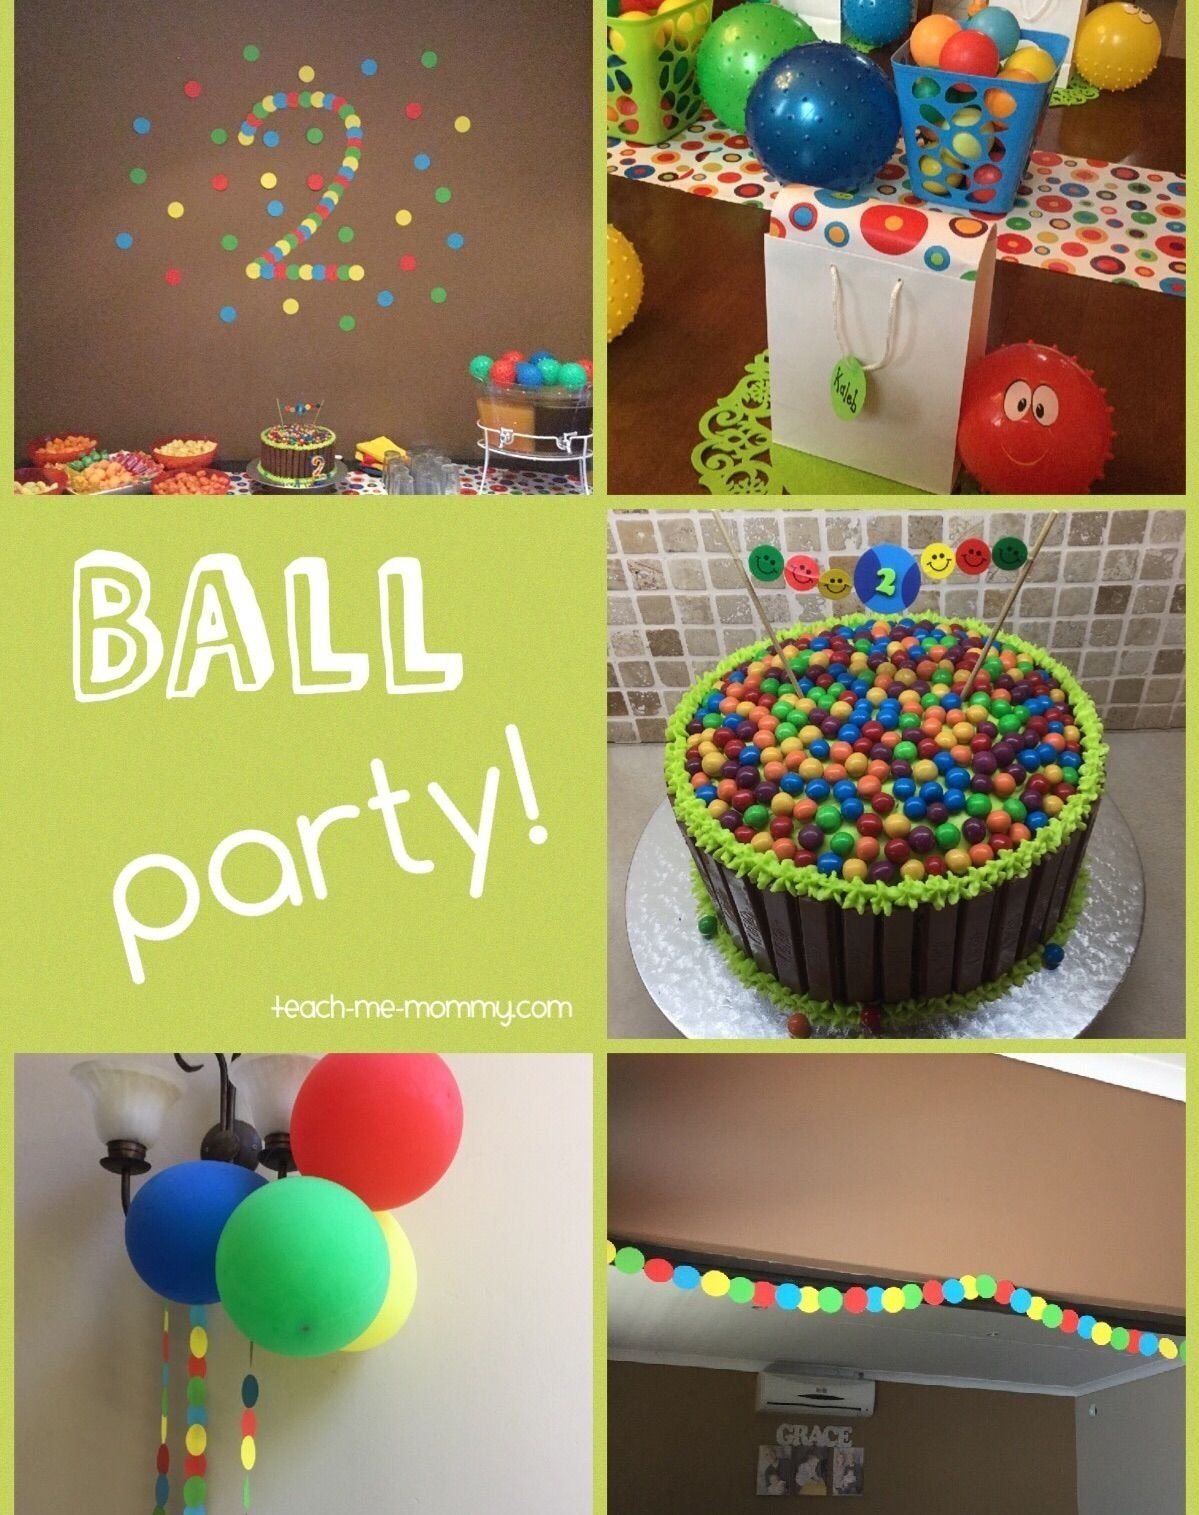 10 Great 2 Year Old Boy Birthday Party Ideas ball themed party for a 2 year old themed parties birthdays and 5